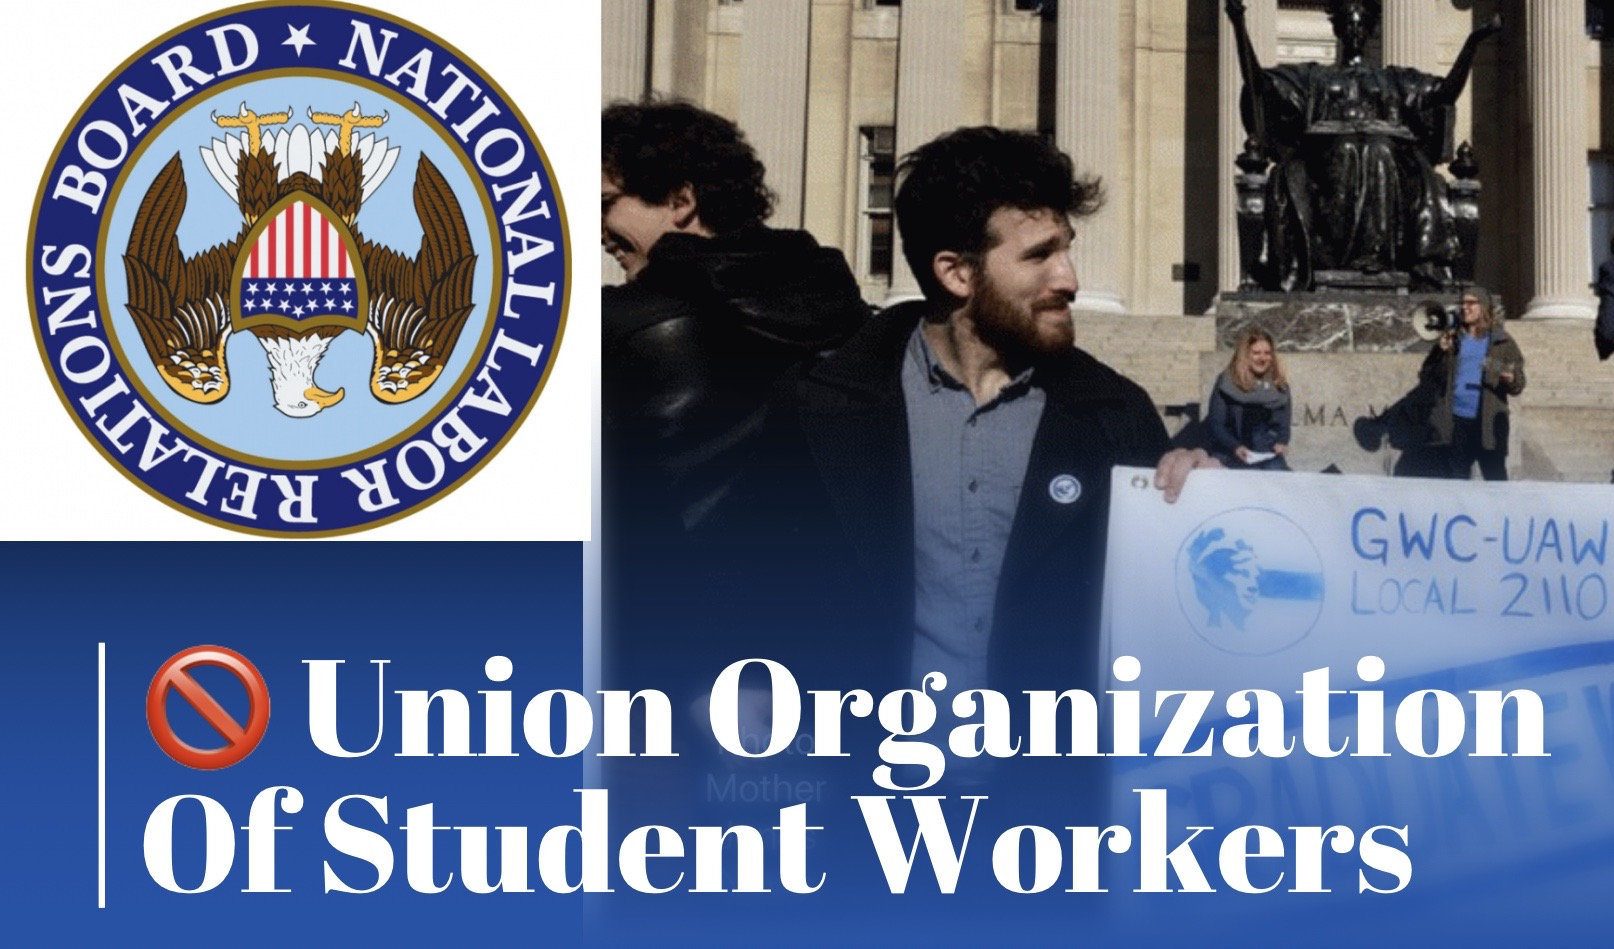 Proposed NLRB Employee Definition To Exclude College Study Workers